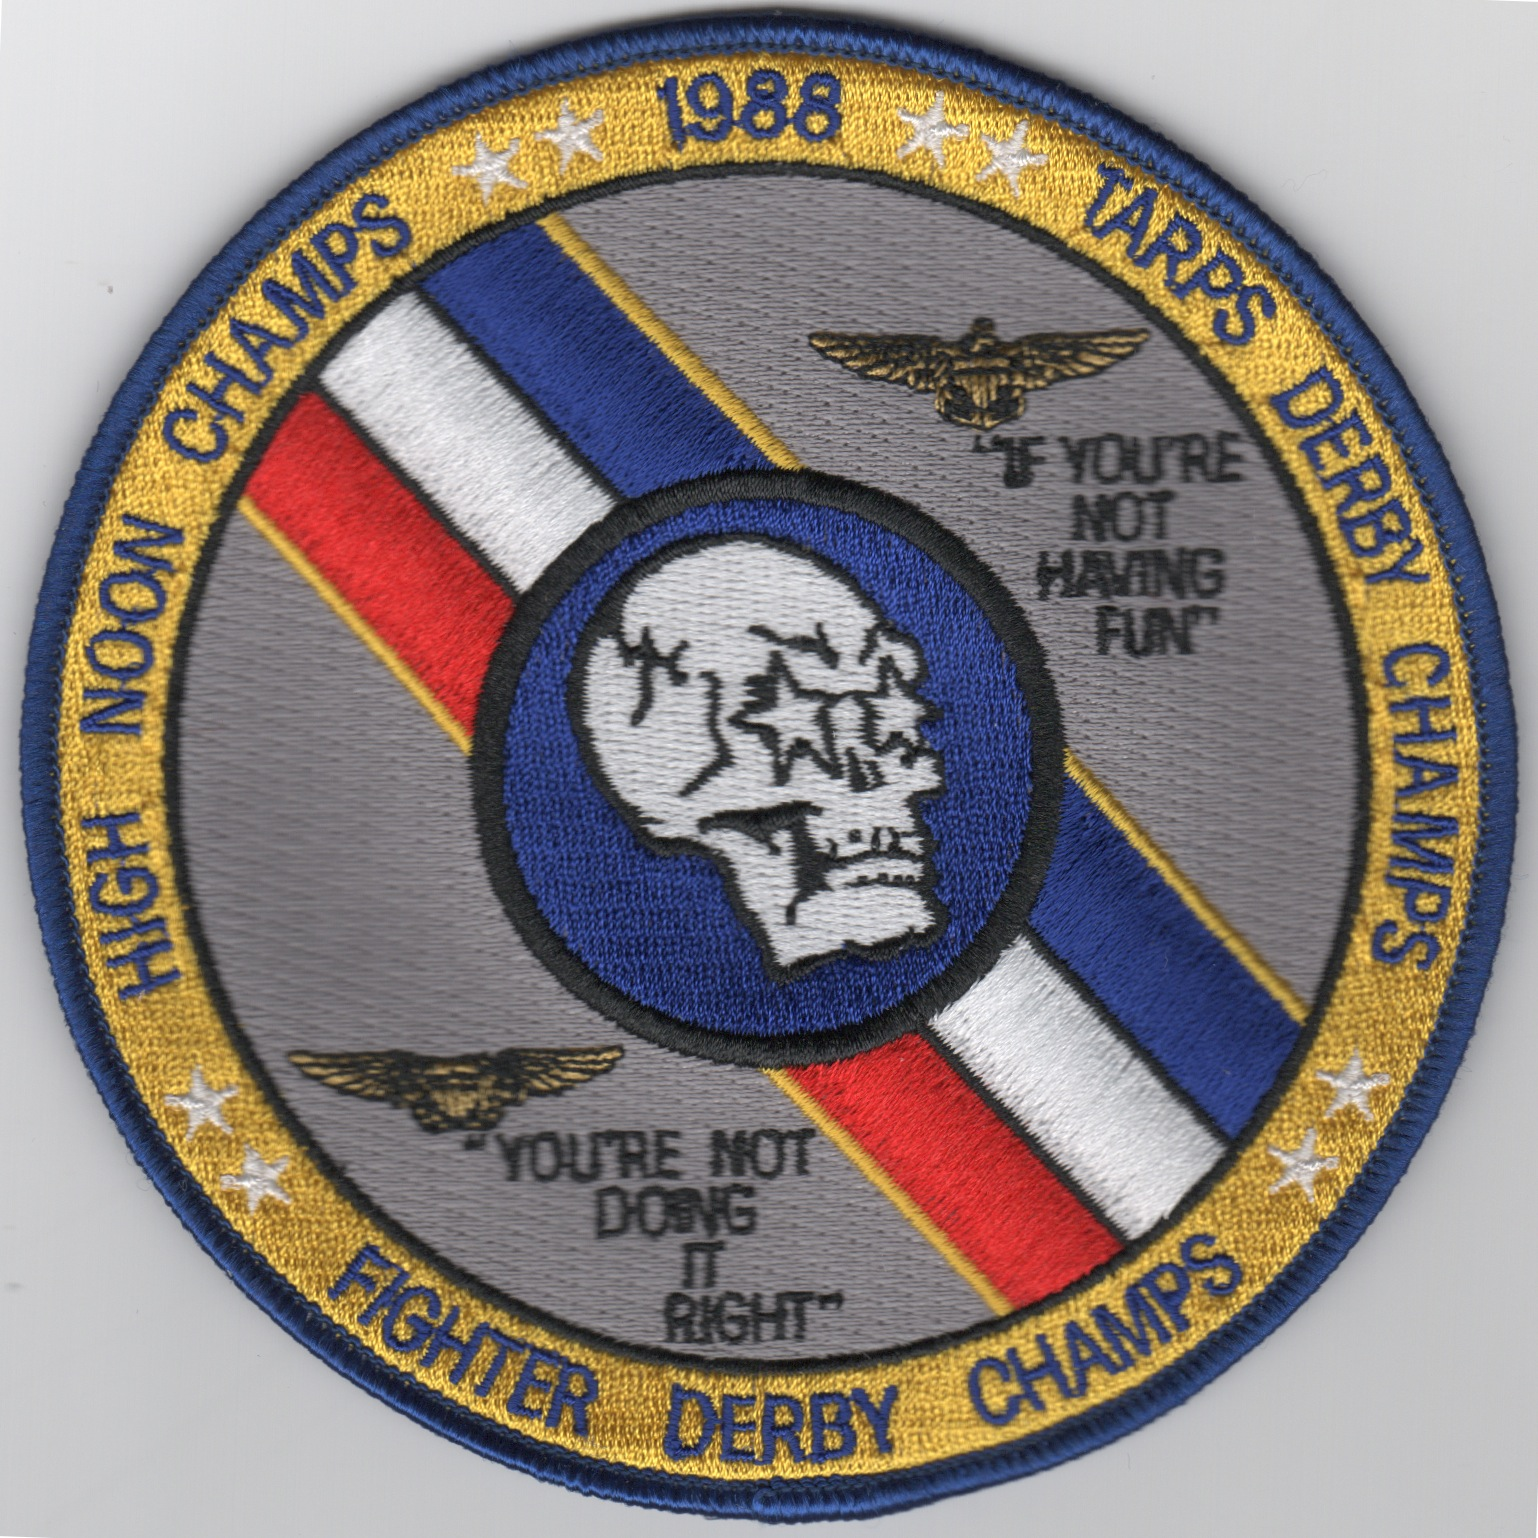 VF-2 1988 TARPS Derby Champs Patch